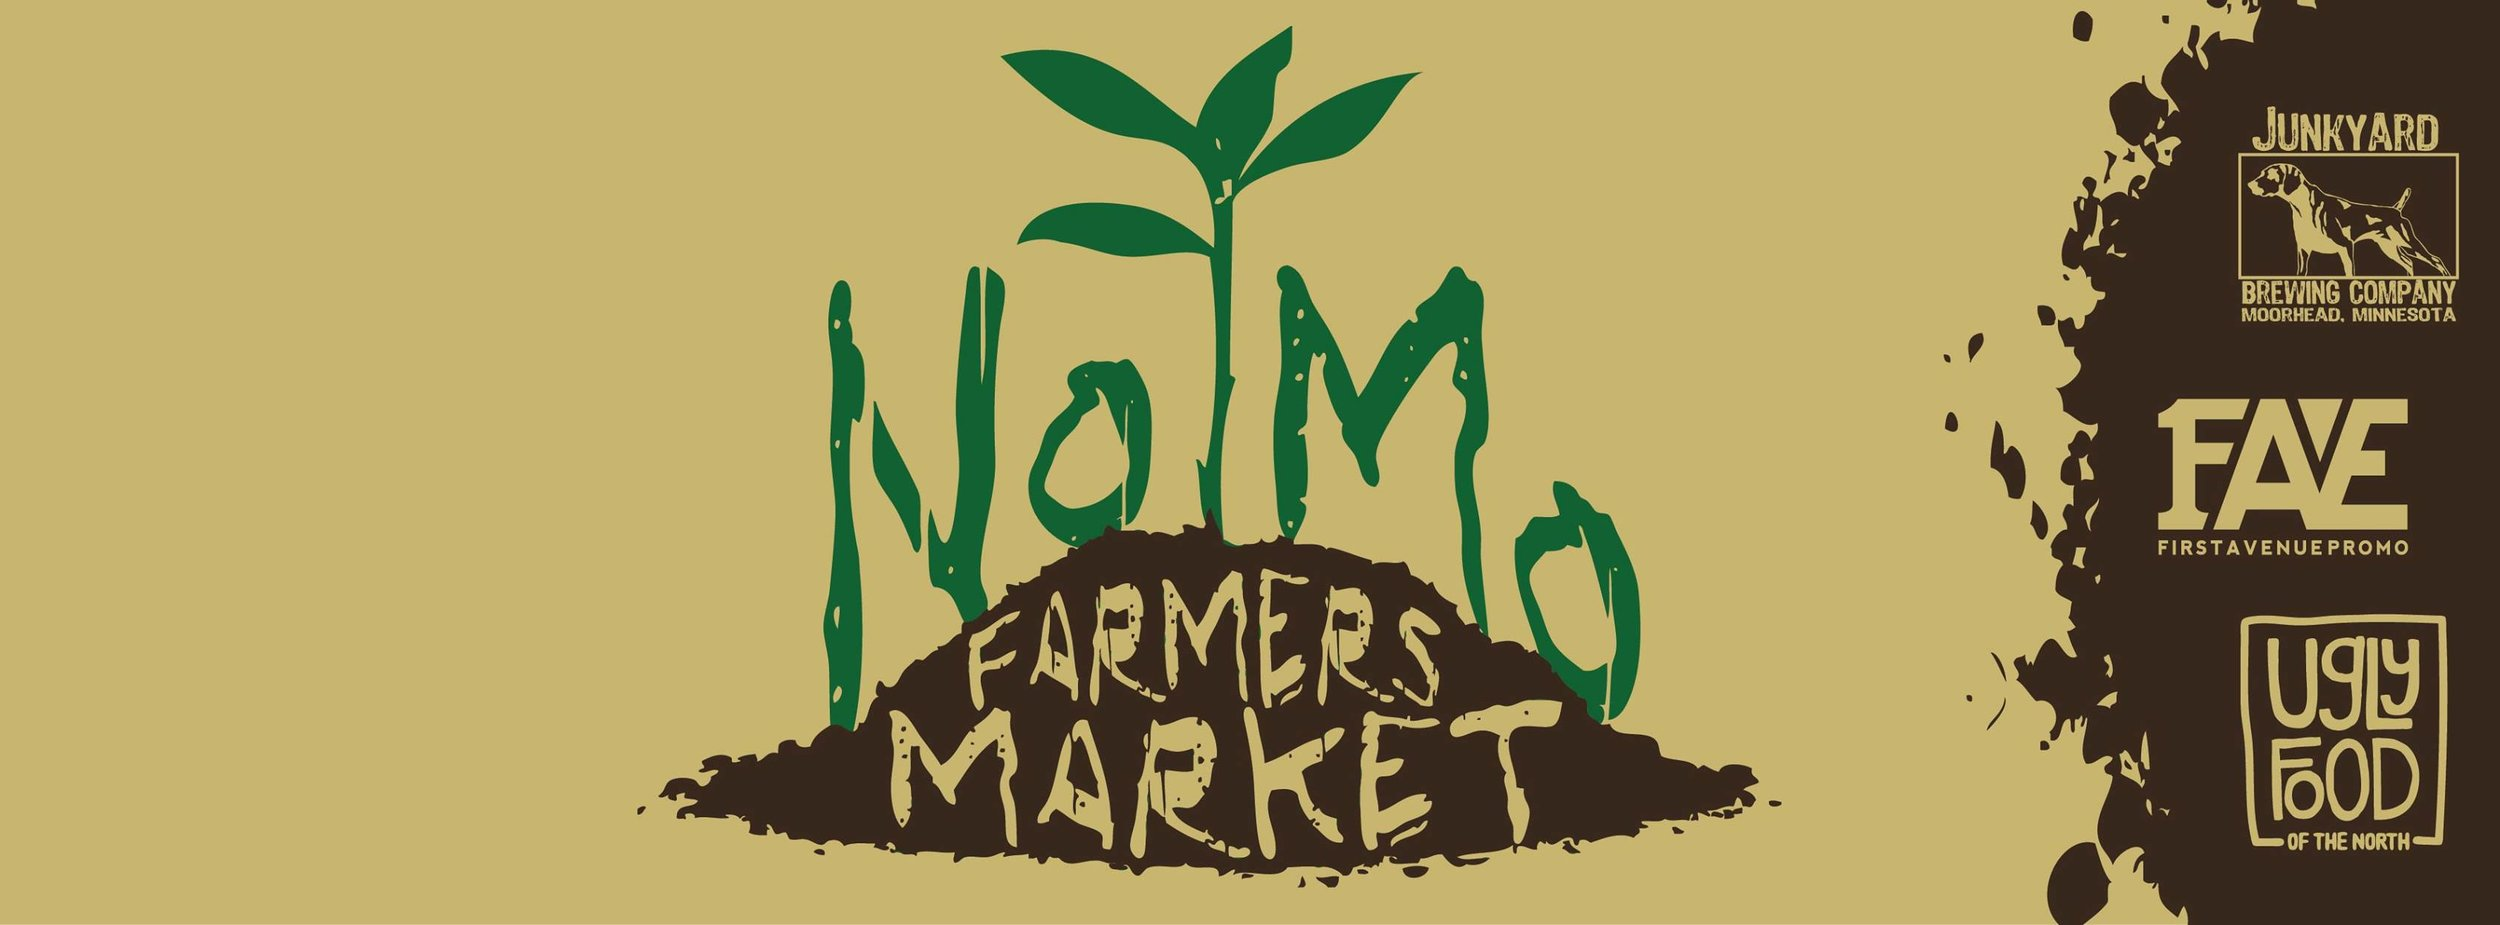 June 2016 - Pop-up farmers market at Junkyard Brewing Company included vendors  Boyum Farms ,  First Ave Promo , Four Seasonings Catering,  The Garden Party ,  New Breed  Brew Chews,  Three Bears Honey Co. ,  Woodchuck Community Farm , Sundog Prairie Farm,  Robert V. Byrd  (aka Rib Supreme) and  Prairie Roots Food Co-op .